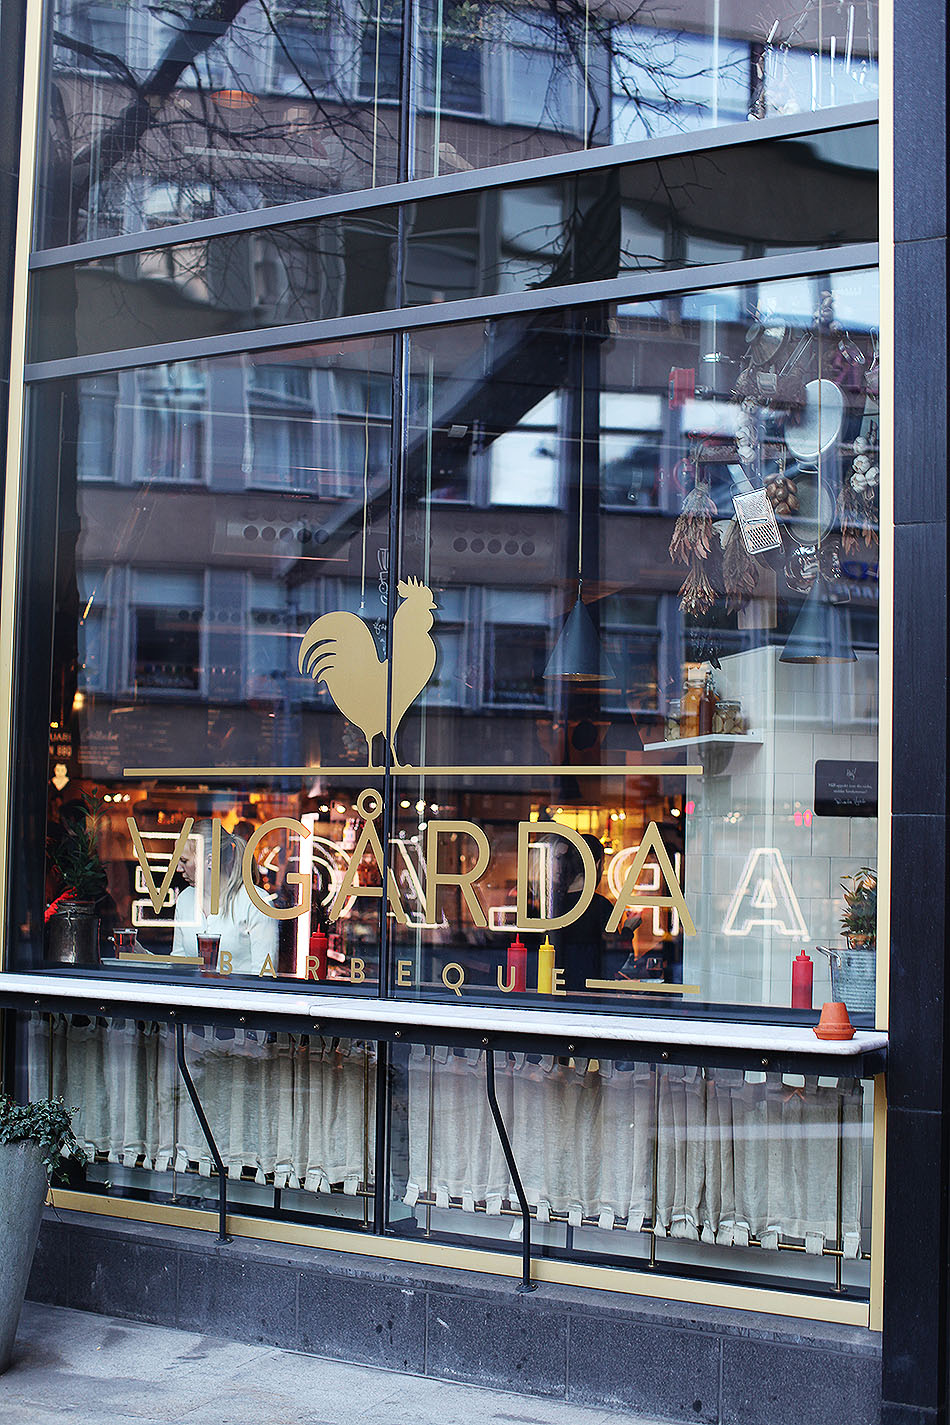 Vigarda Barbeque | Where to Eat in Stockholm